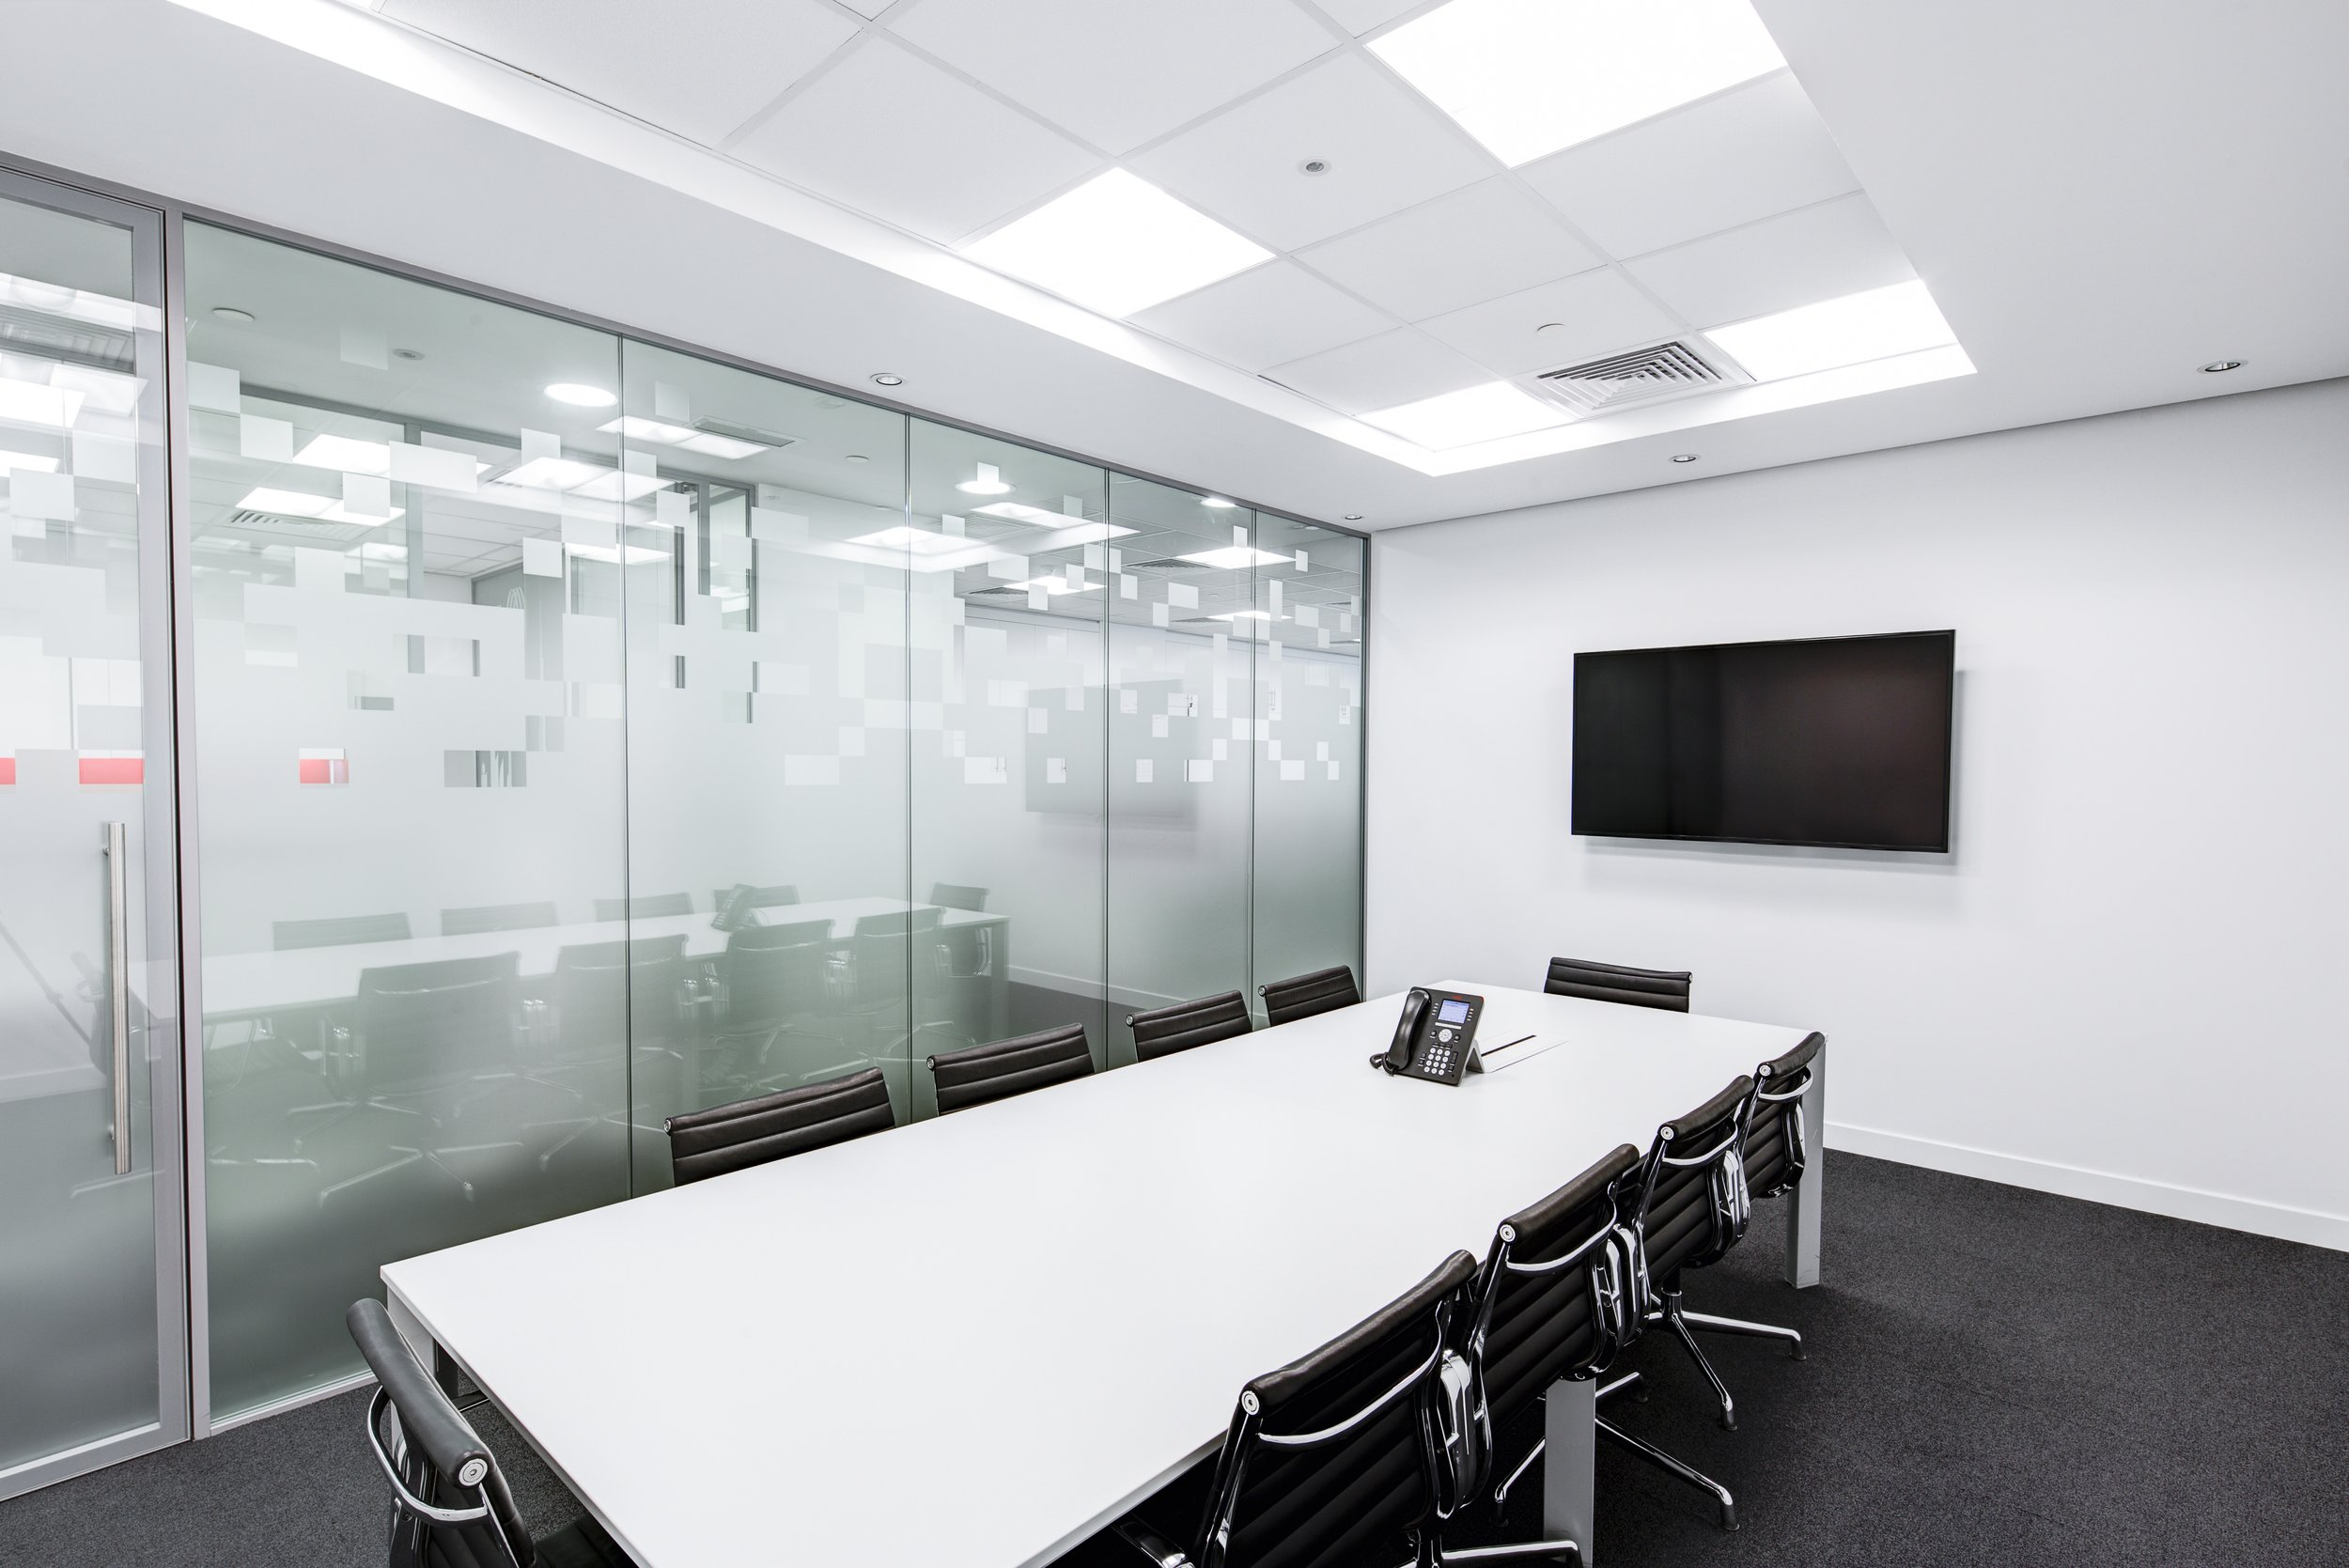 black-and-white-boardroom-ceiling-260689.jpg